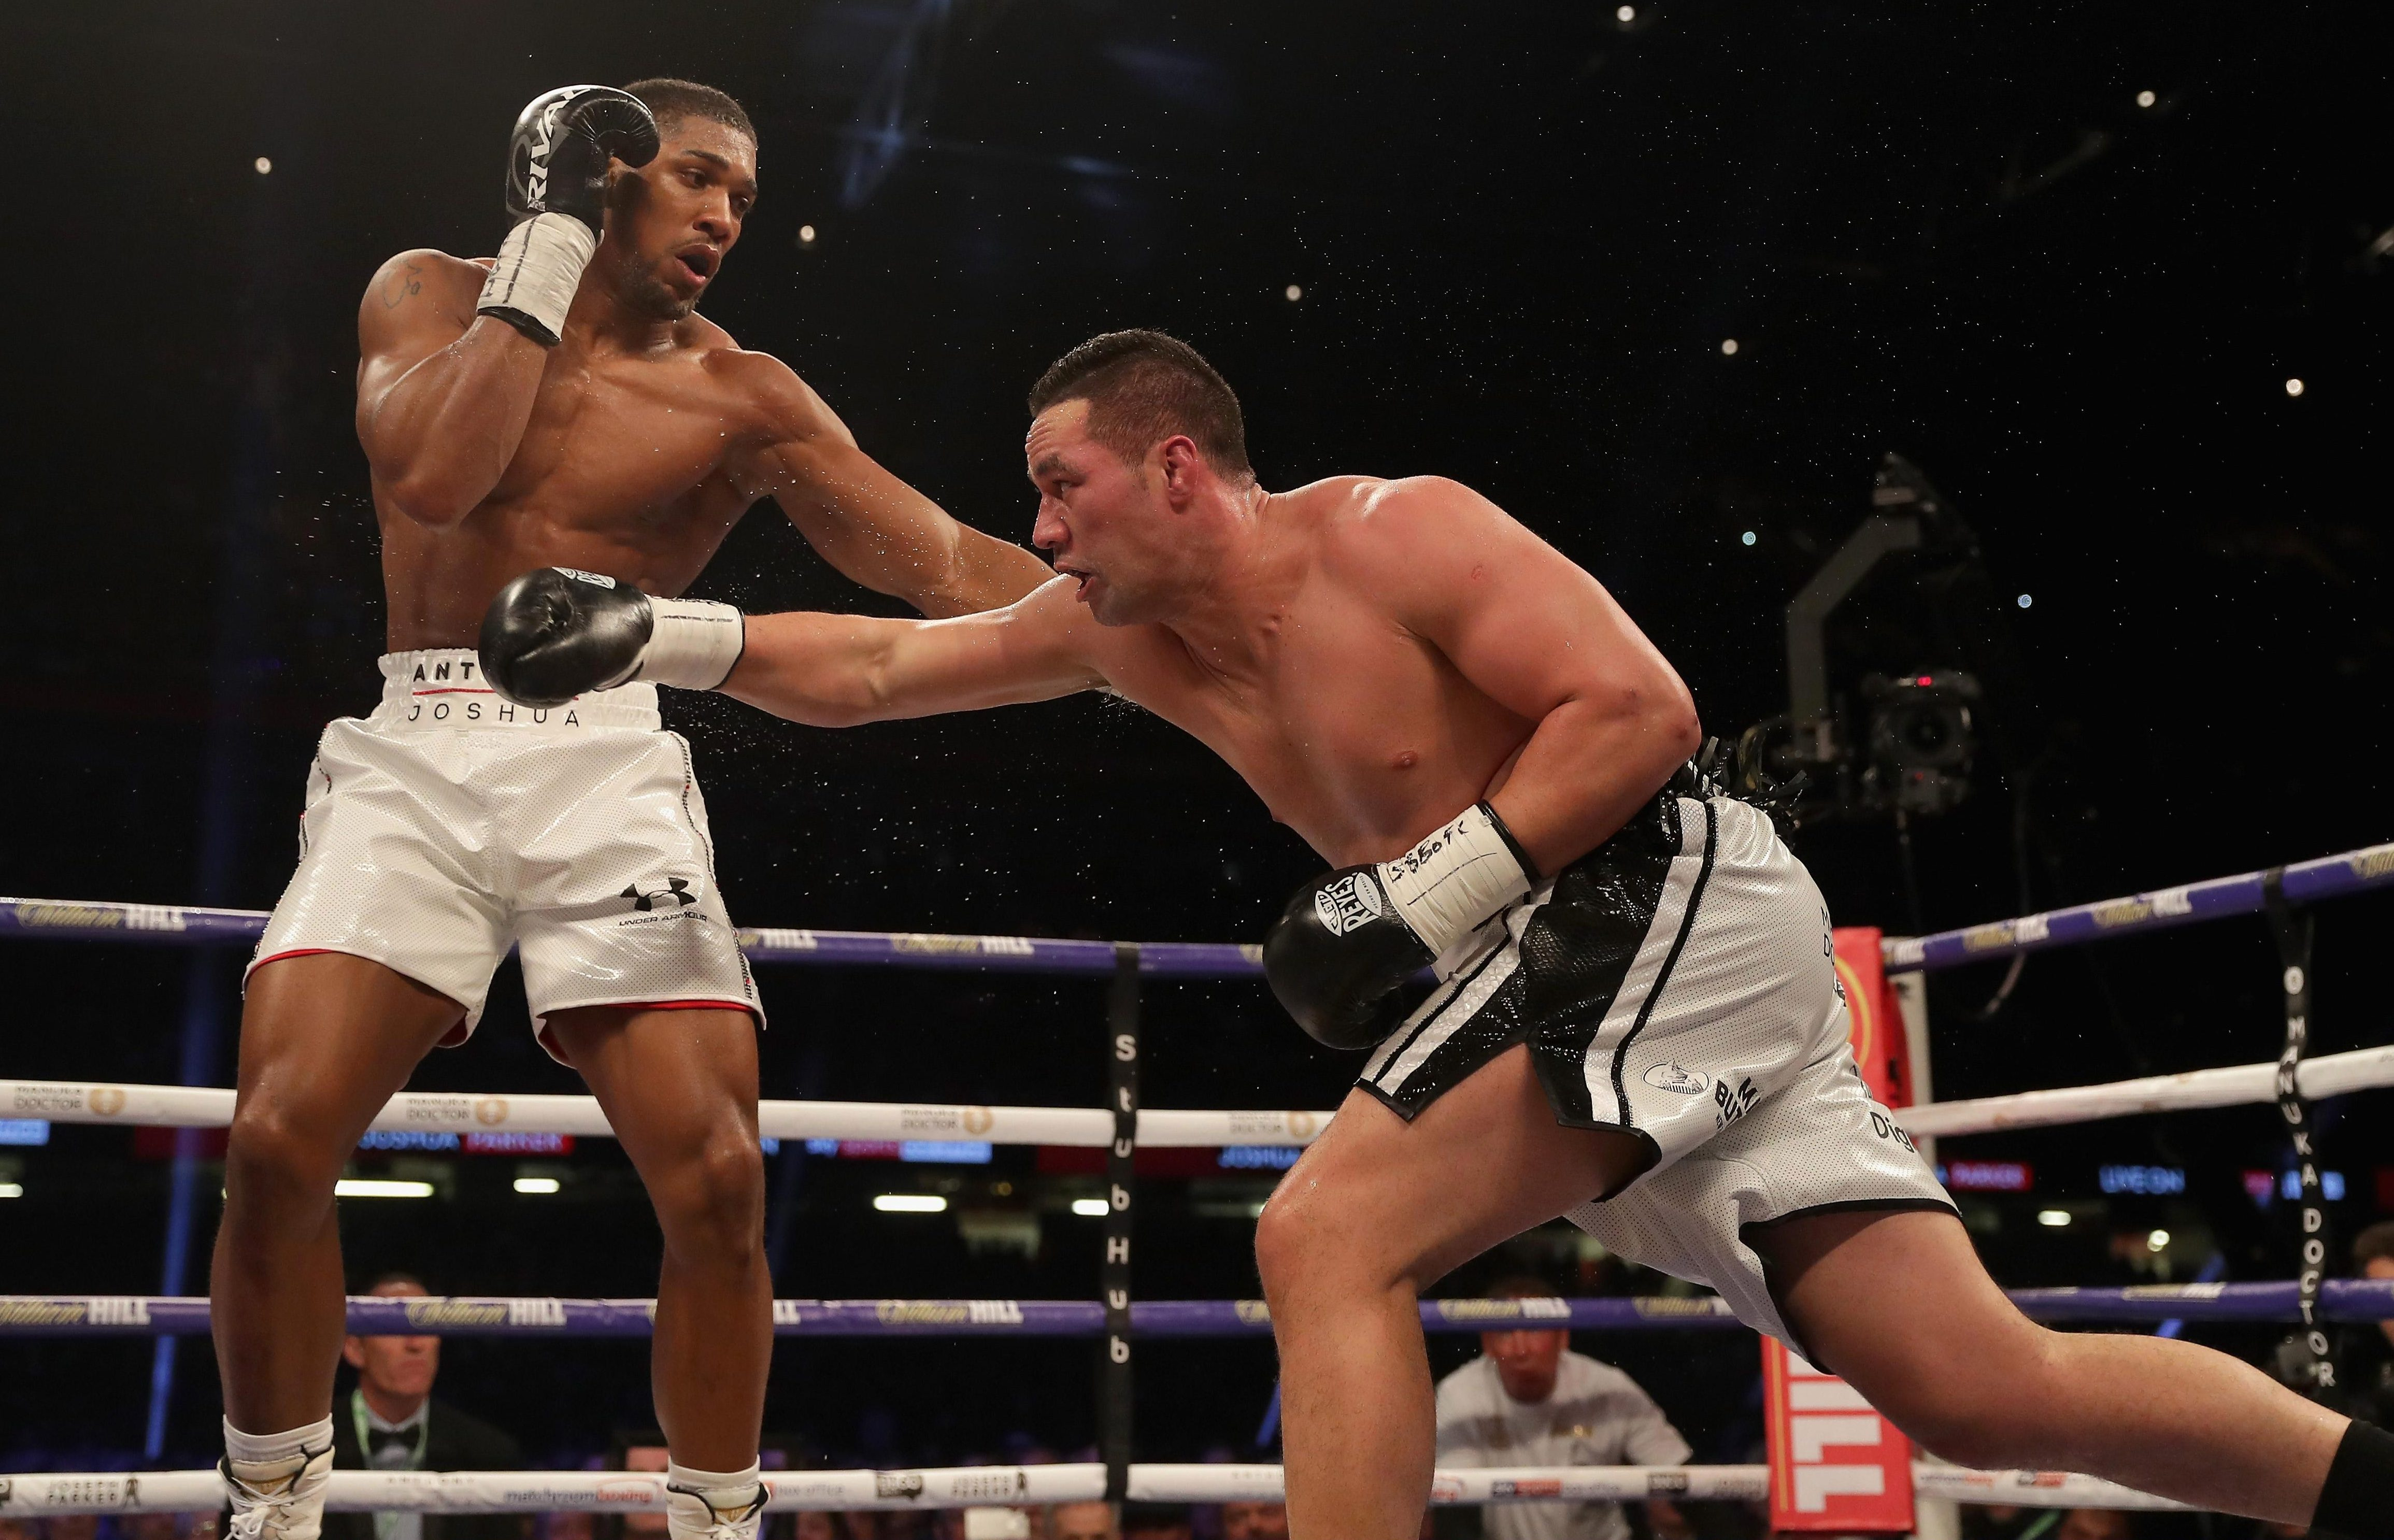 Anthony Joshua beat Joseph Parker at the Principality Stadium in Cardiff in his last fight